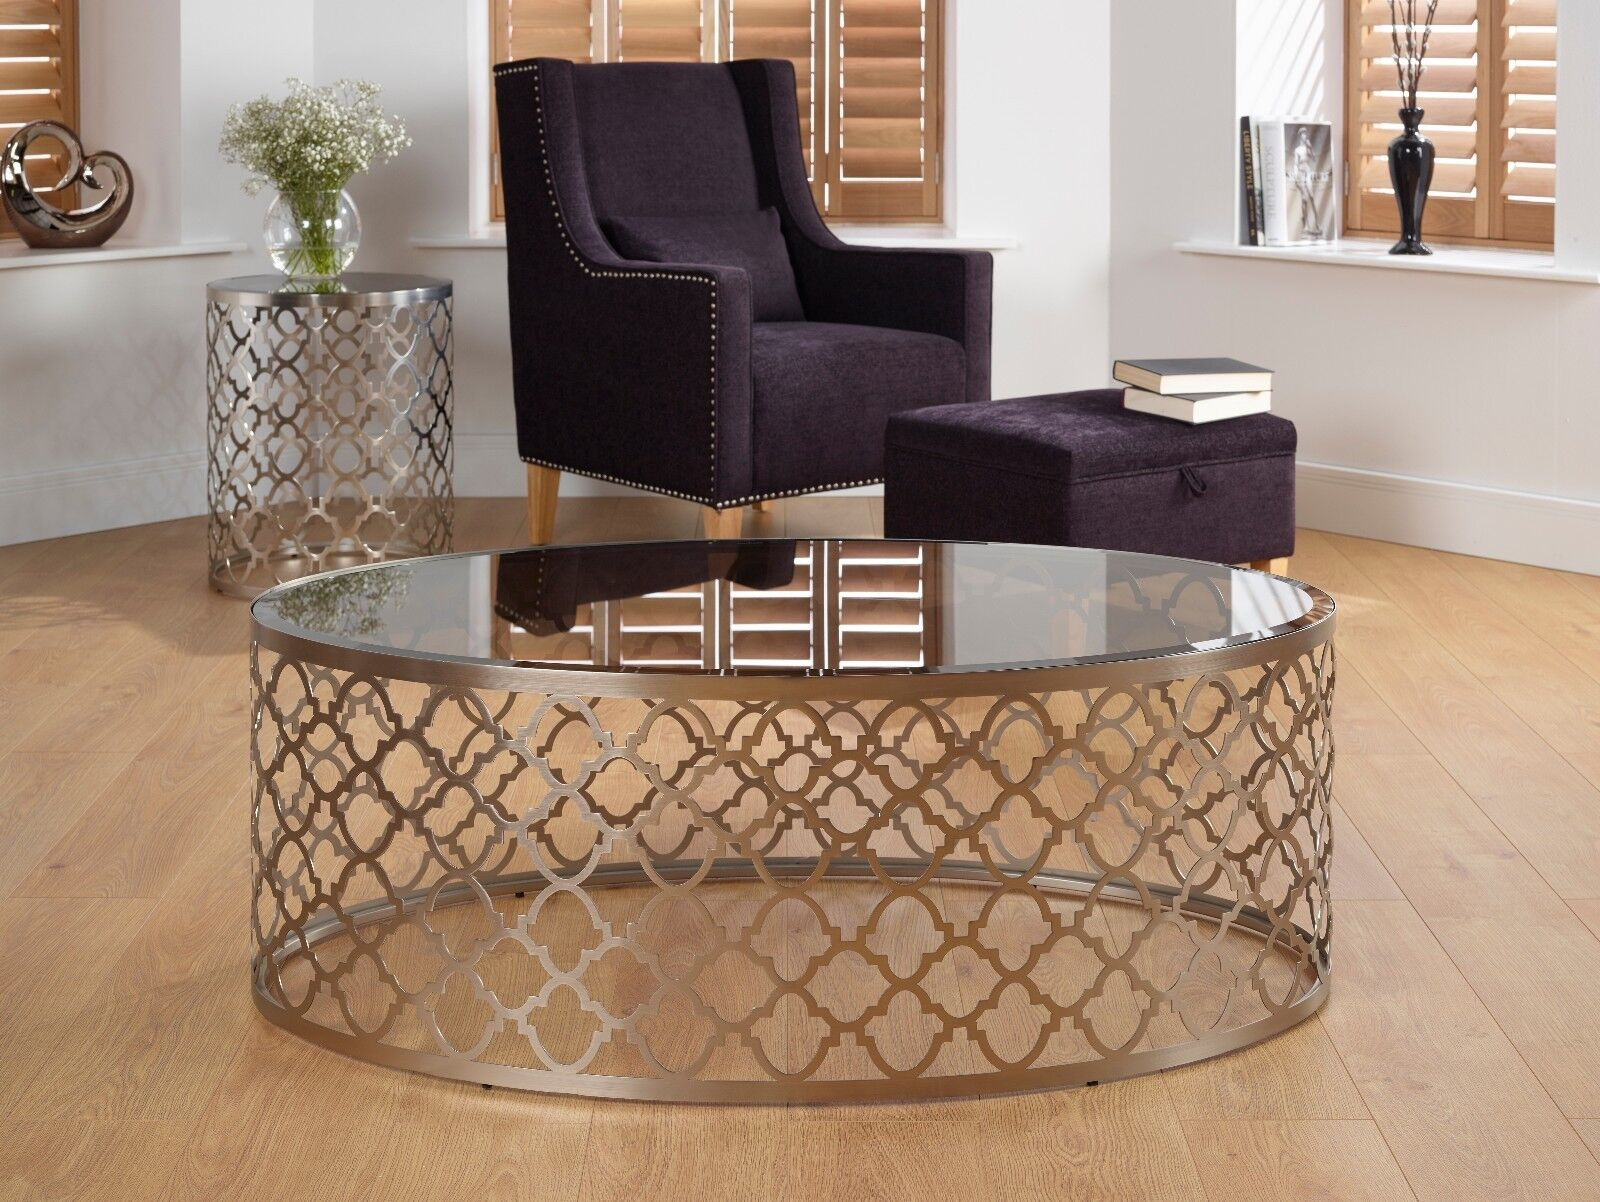 Zenith Glass Coffee Table Metal Base Oval Smoked Honeycomb Design